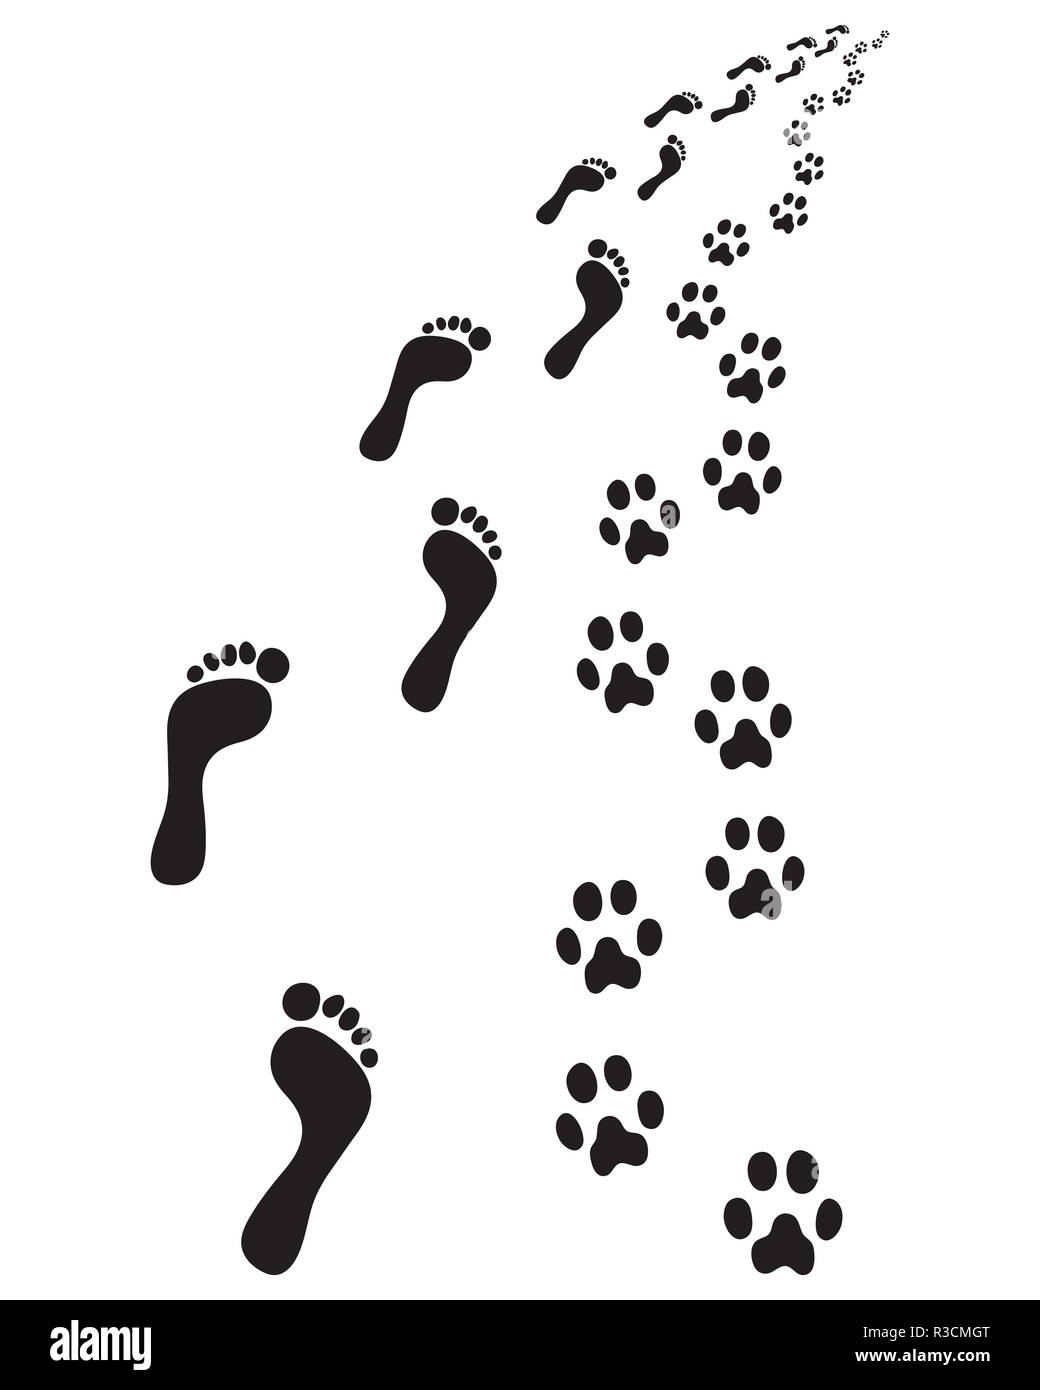 6bf3d49bad32 Prints of human feet and dog paws Stock Photo: 225858328 - Alamy